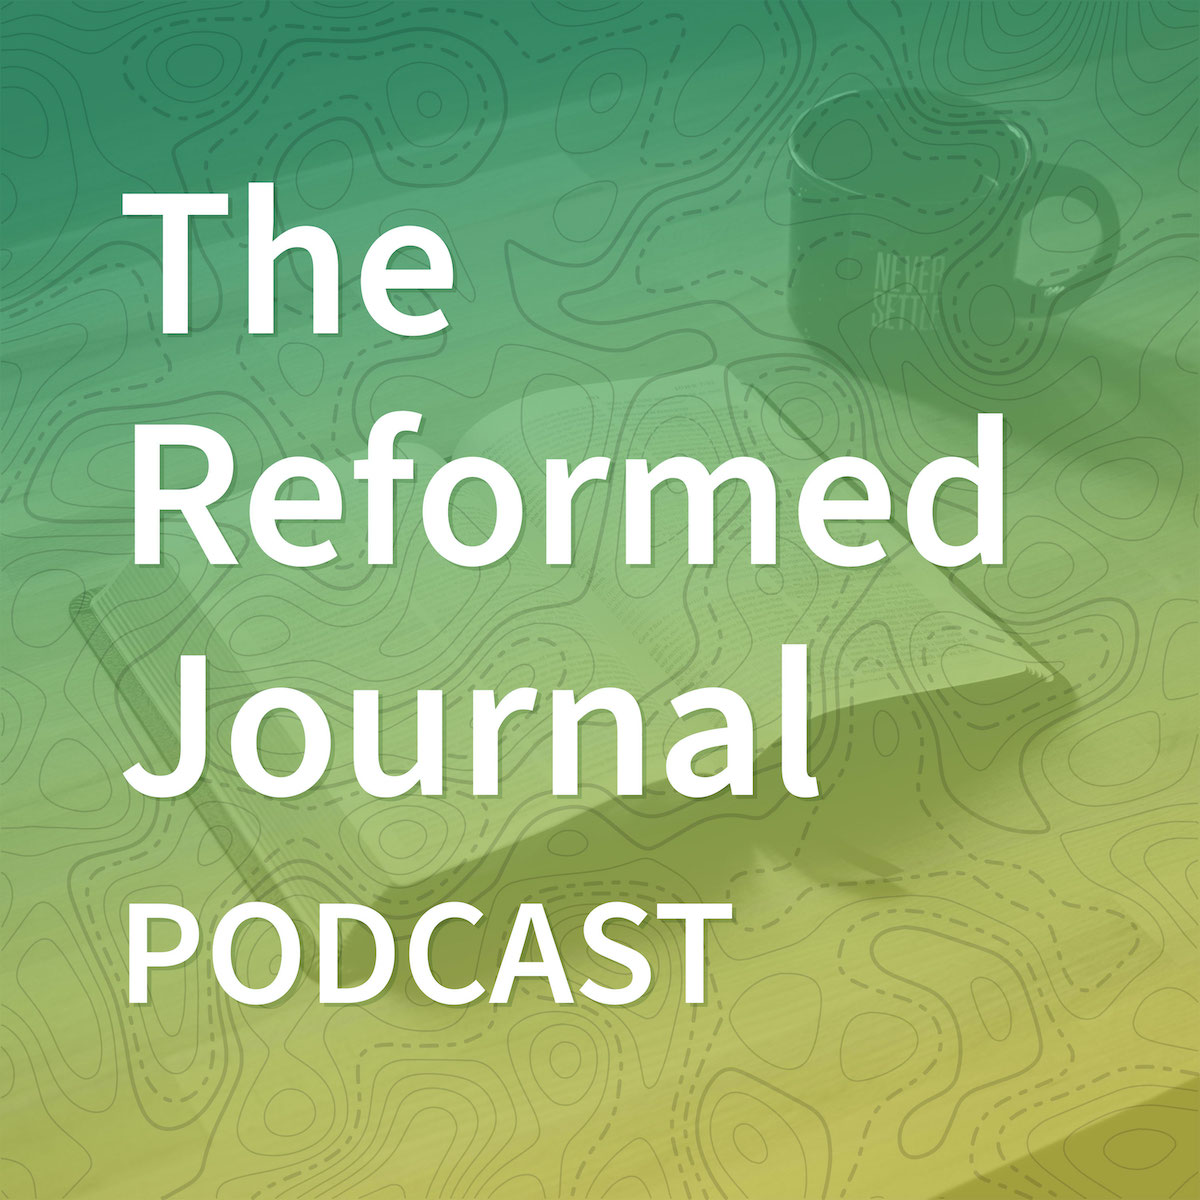 EP 2-2: Jeff Munroe on Reading Buechner